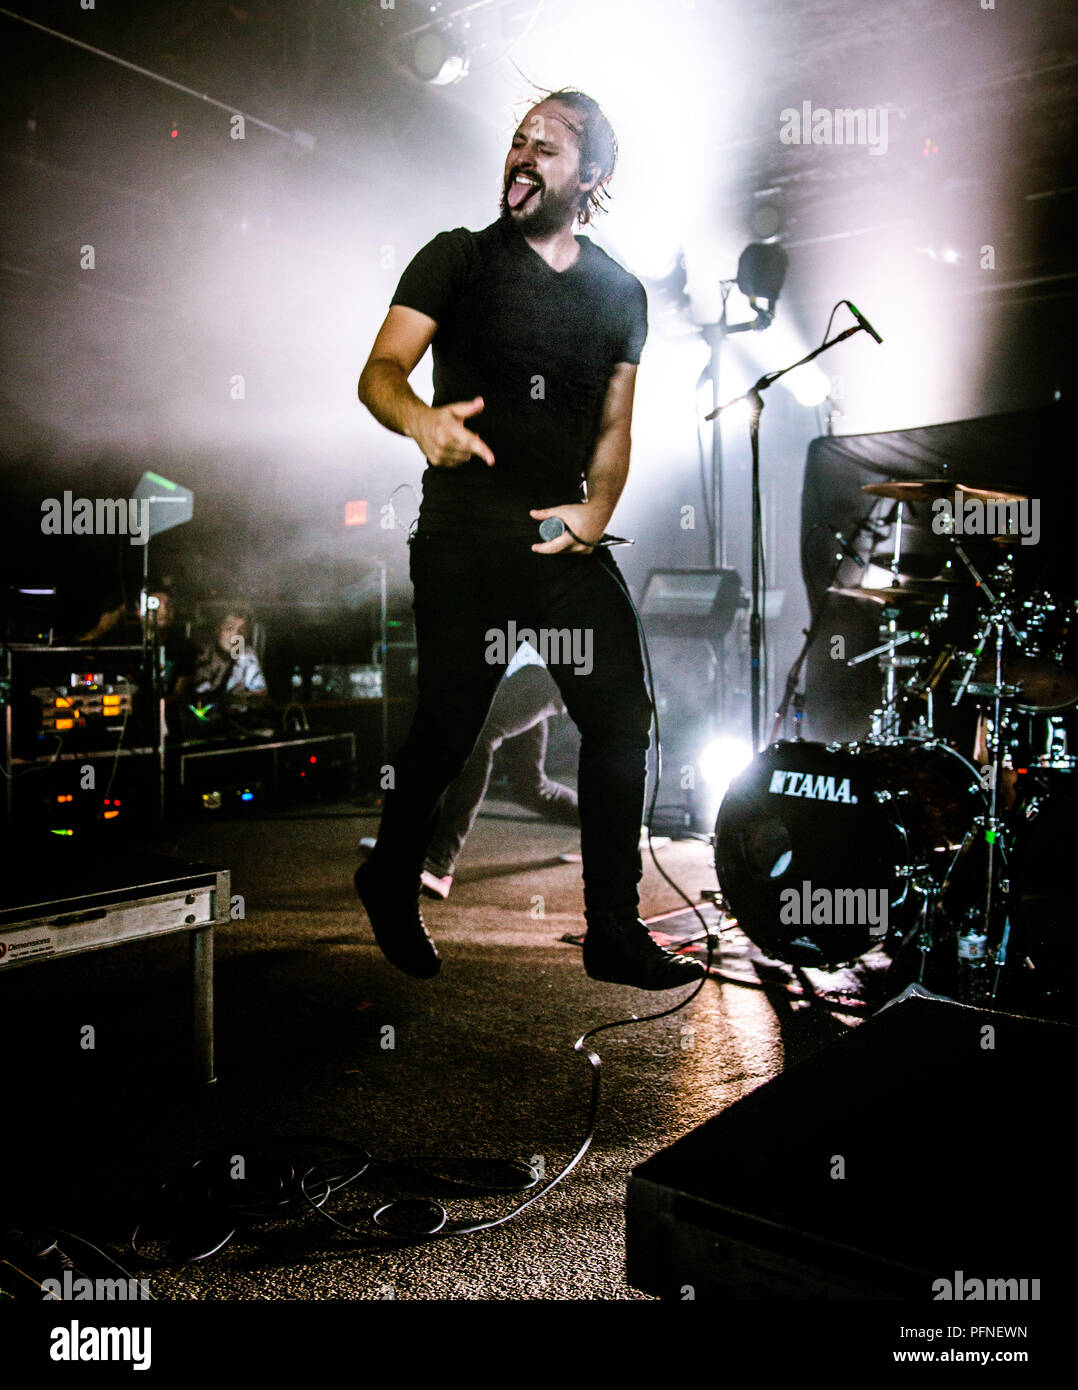 Austin, Texas, USA. 19th Aug, 2018. LUKAS MAGYAR, the lead vocalist of Veil of Maya, performs at Empire Control Room & Garage in Austin, Texas for the last stop of The Summer Slaughter Tour 2018. Credit: Alicia Armijo/ZUMA Wire/Alamy Live News - Stock Image